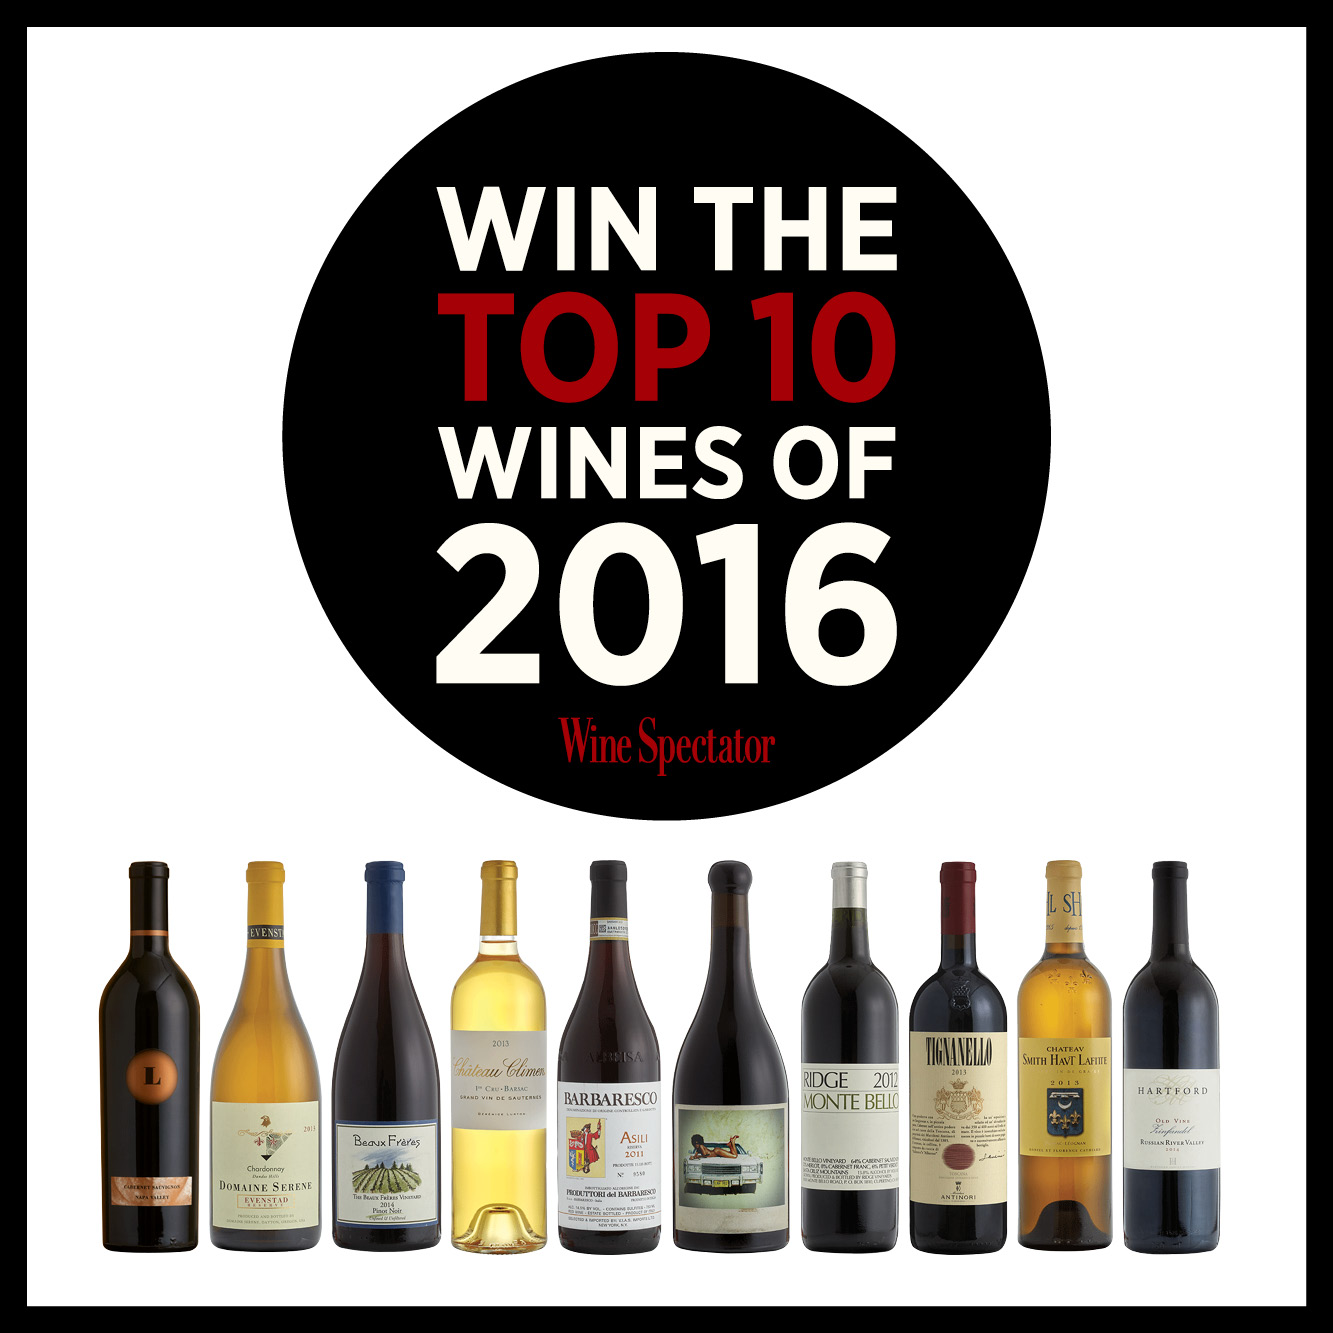 Top 10 Wines Sweepstakes Instagram post, 2017